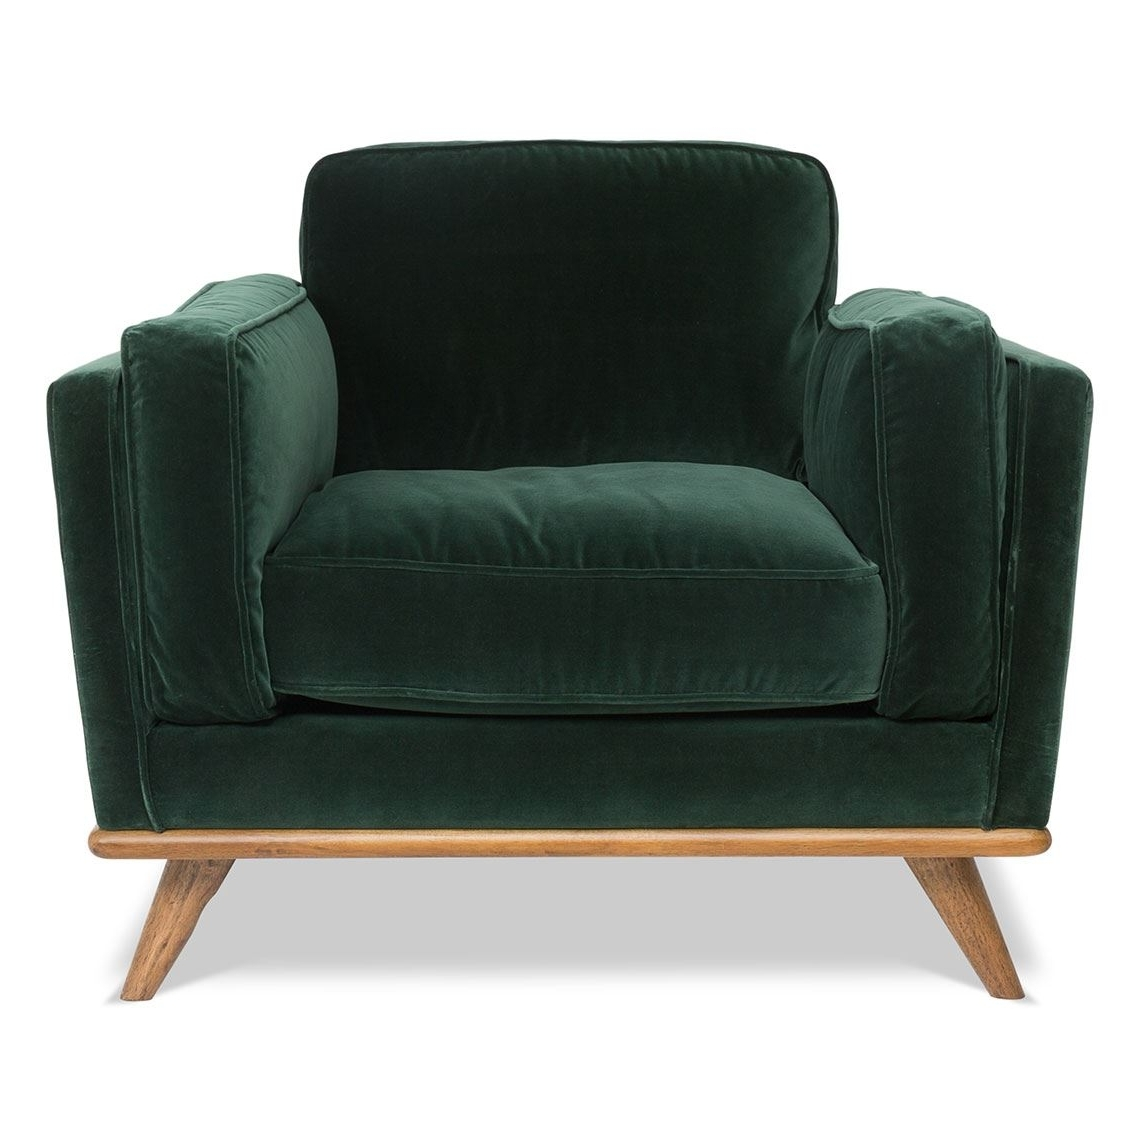 Trendy Big Sofa Chairs Pertaining To Armchair : Small Furniture For Apartments Reading Chairs For Small (View 7 of 15)